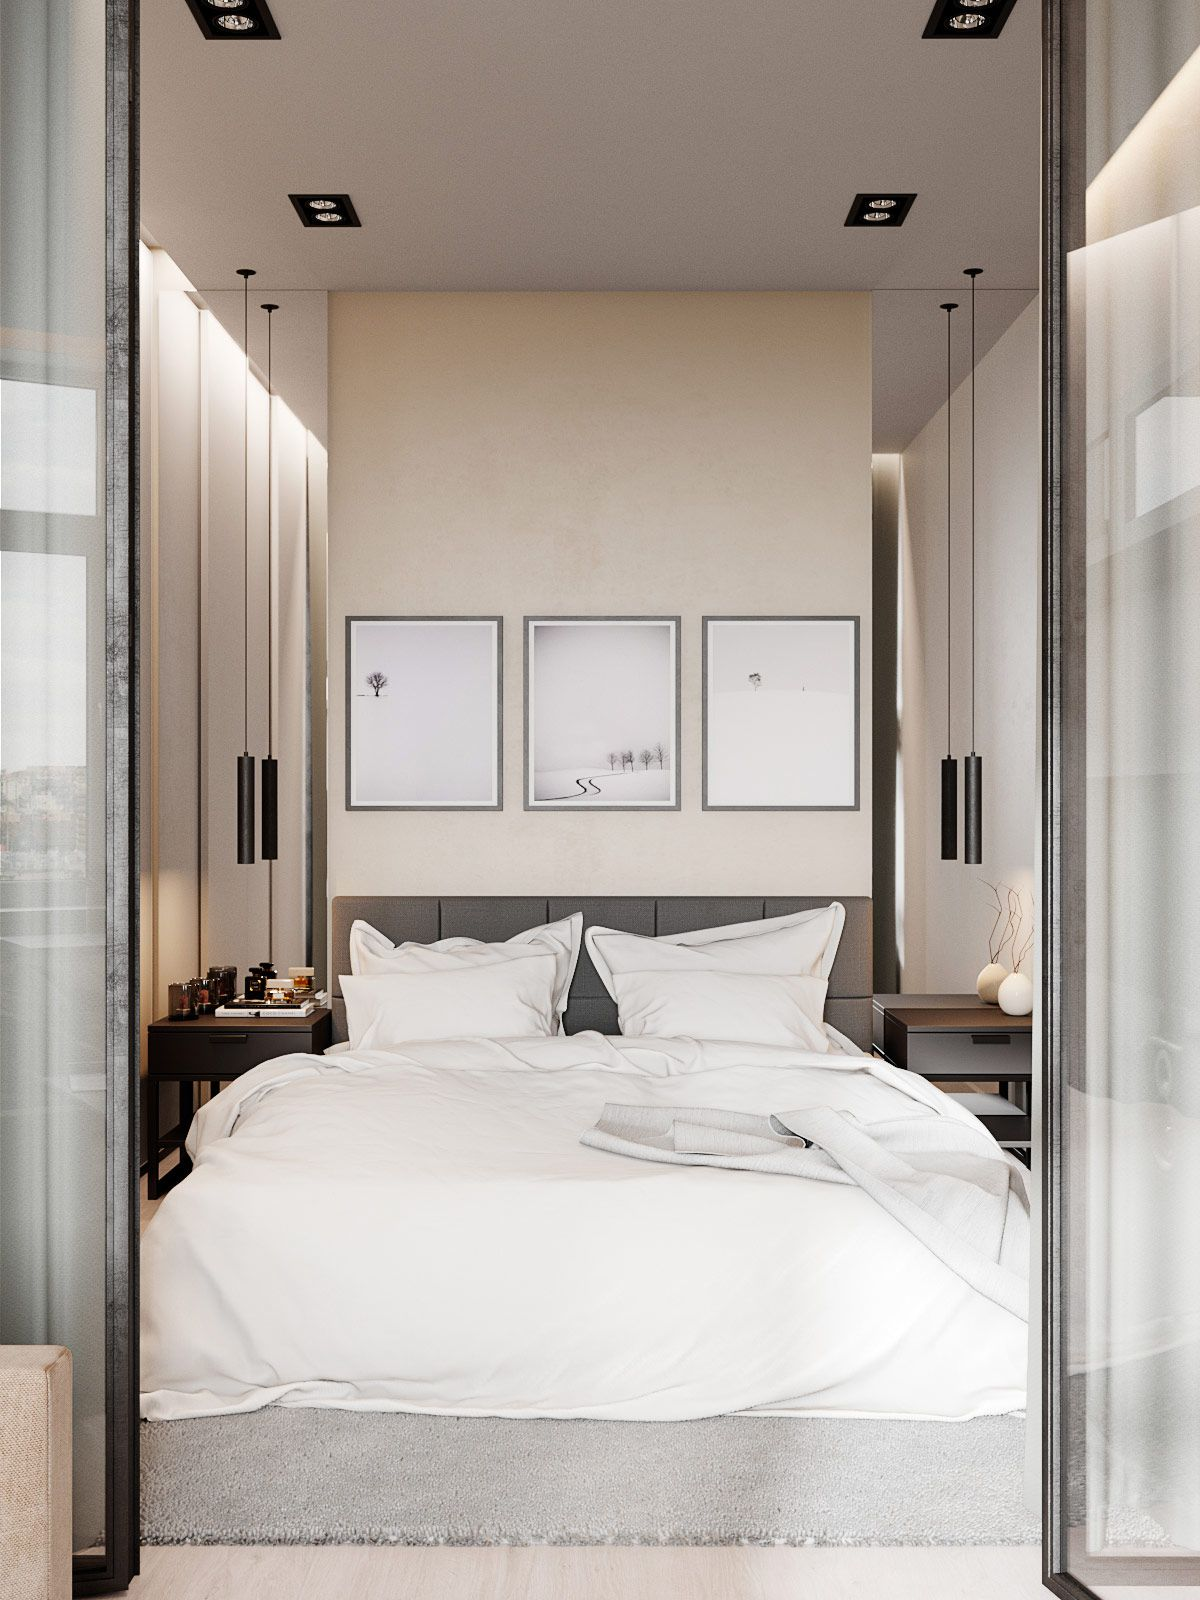 Cosy Spaces With An Essence Of Music In The Air Bedroom Design Inspiration Tiny Bedroom Design Small Bedroom Designs Cosy studio bedroom designs